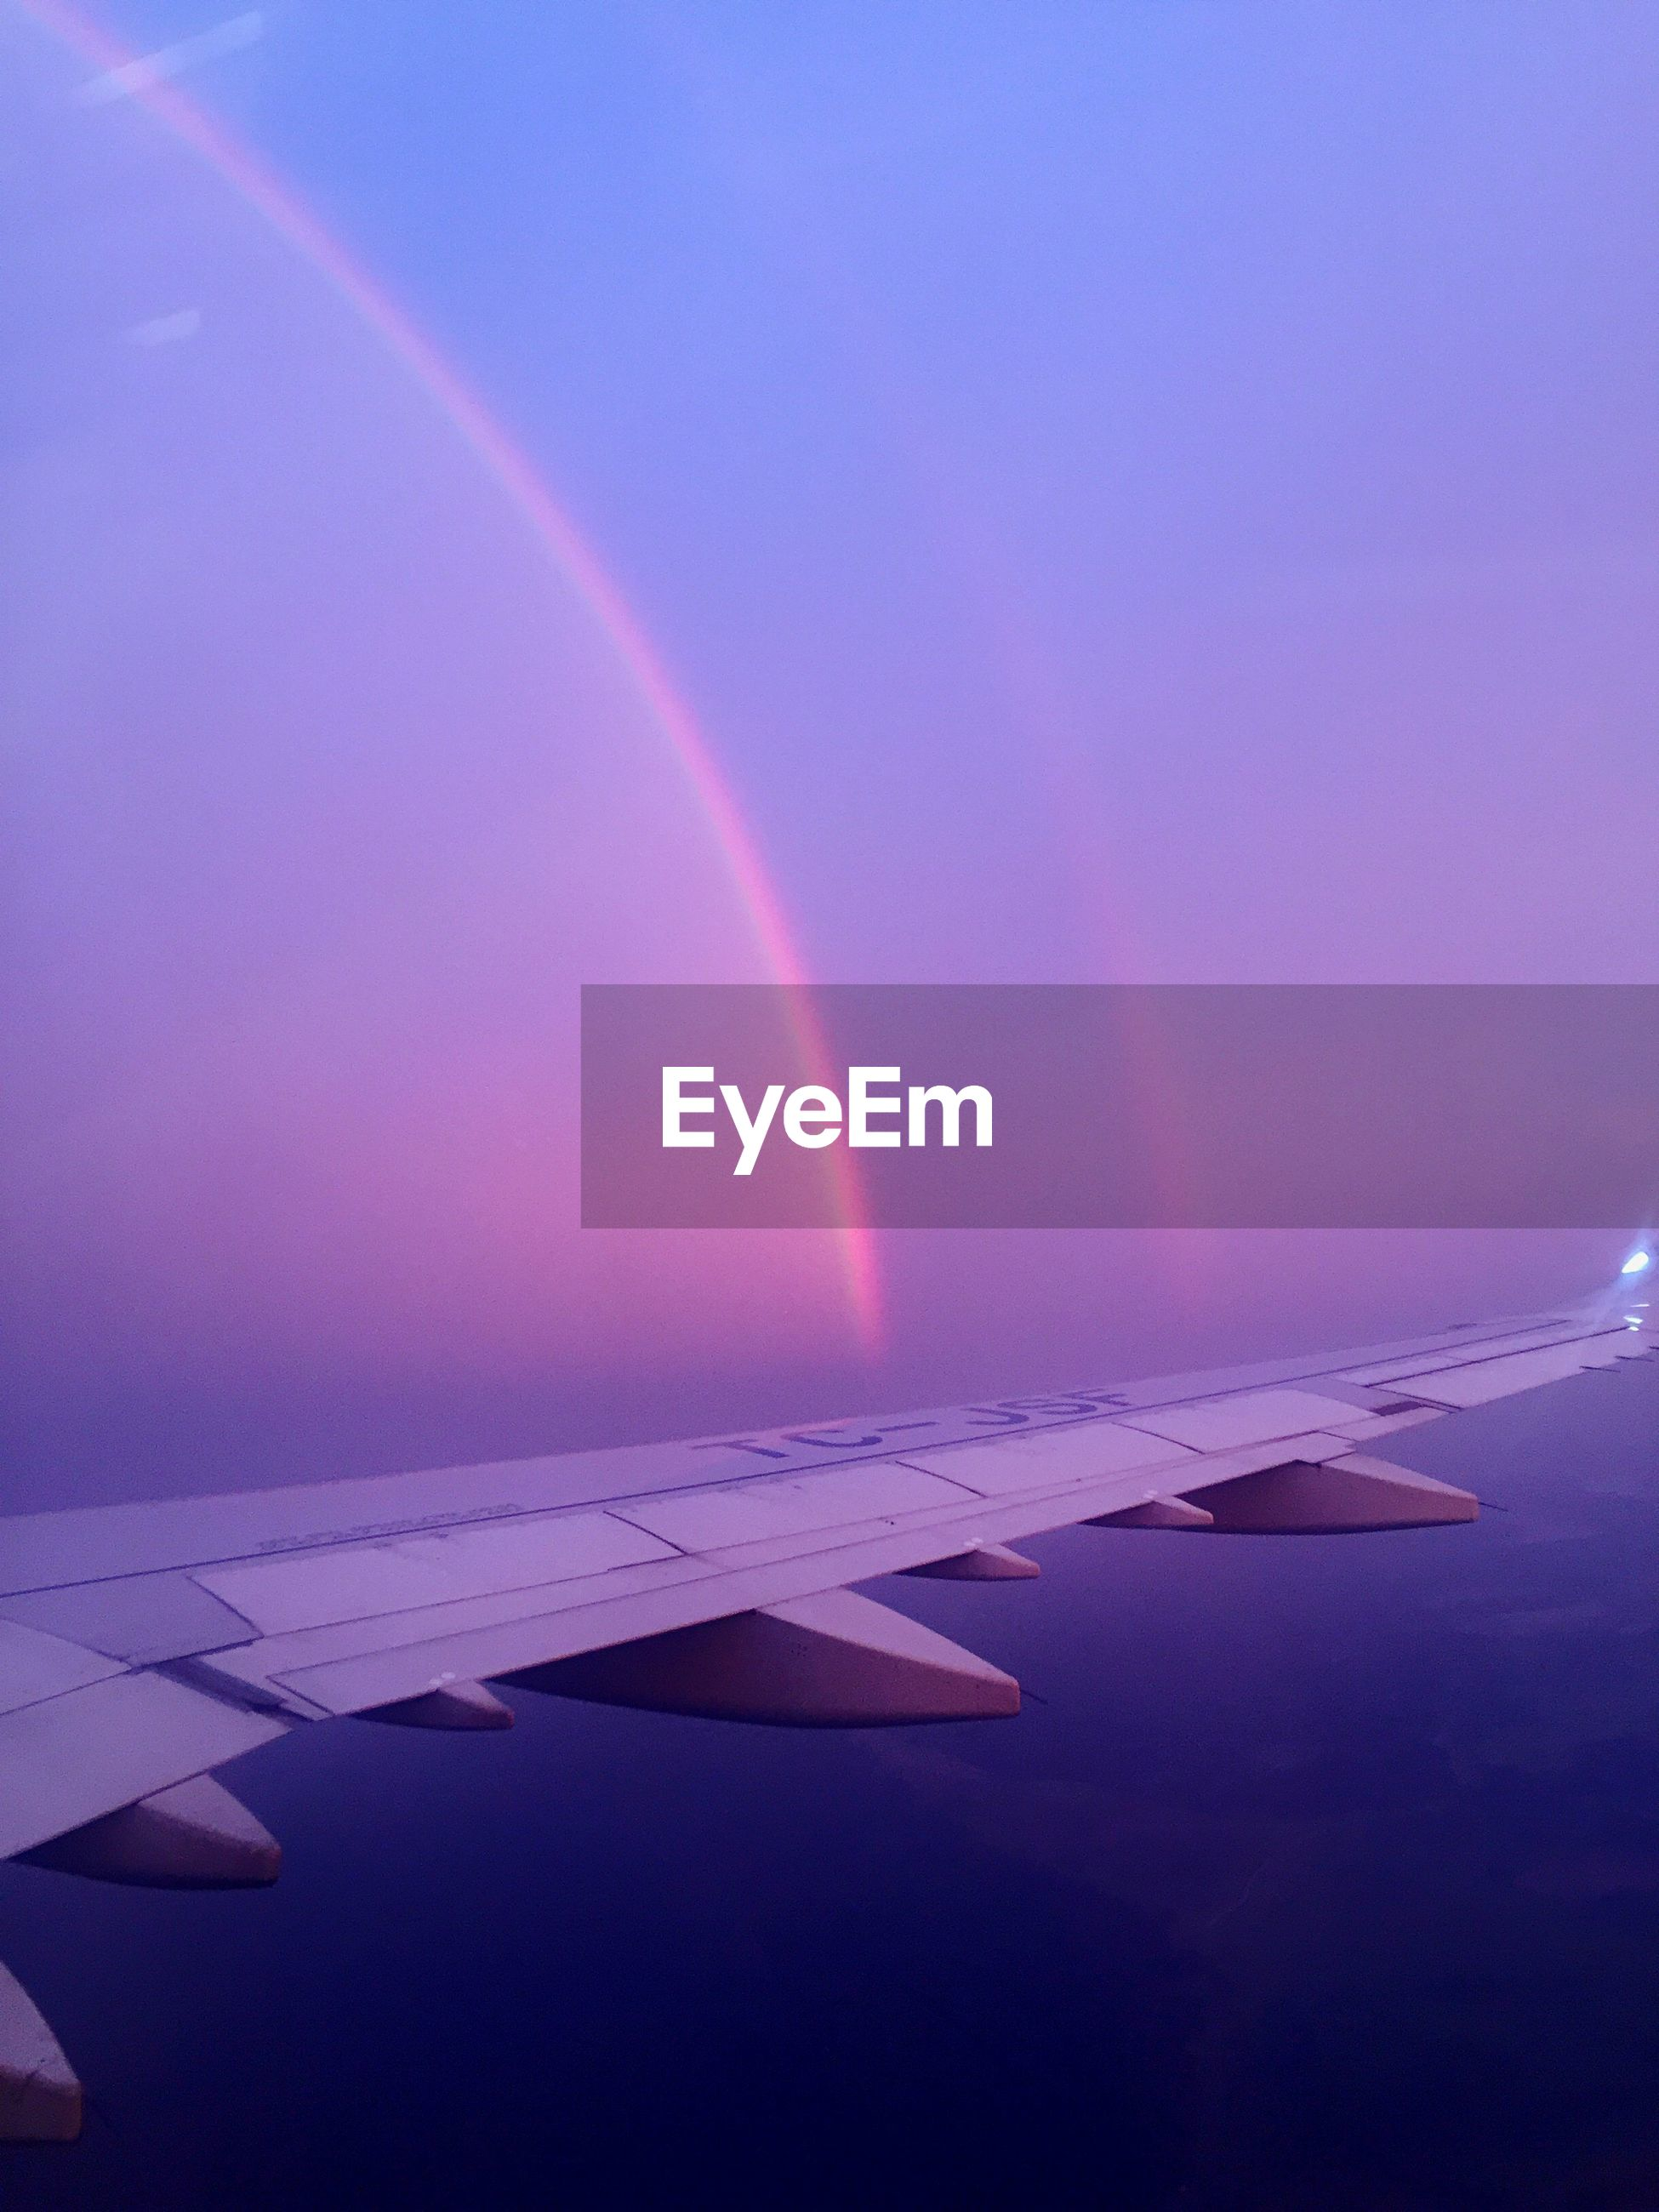 VIEW OF RAINBOW OVER AIRPLANE